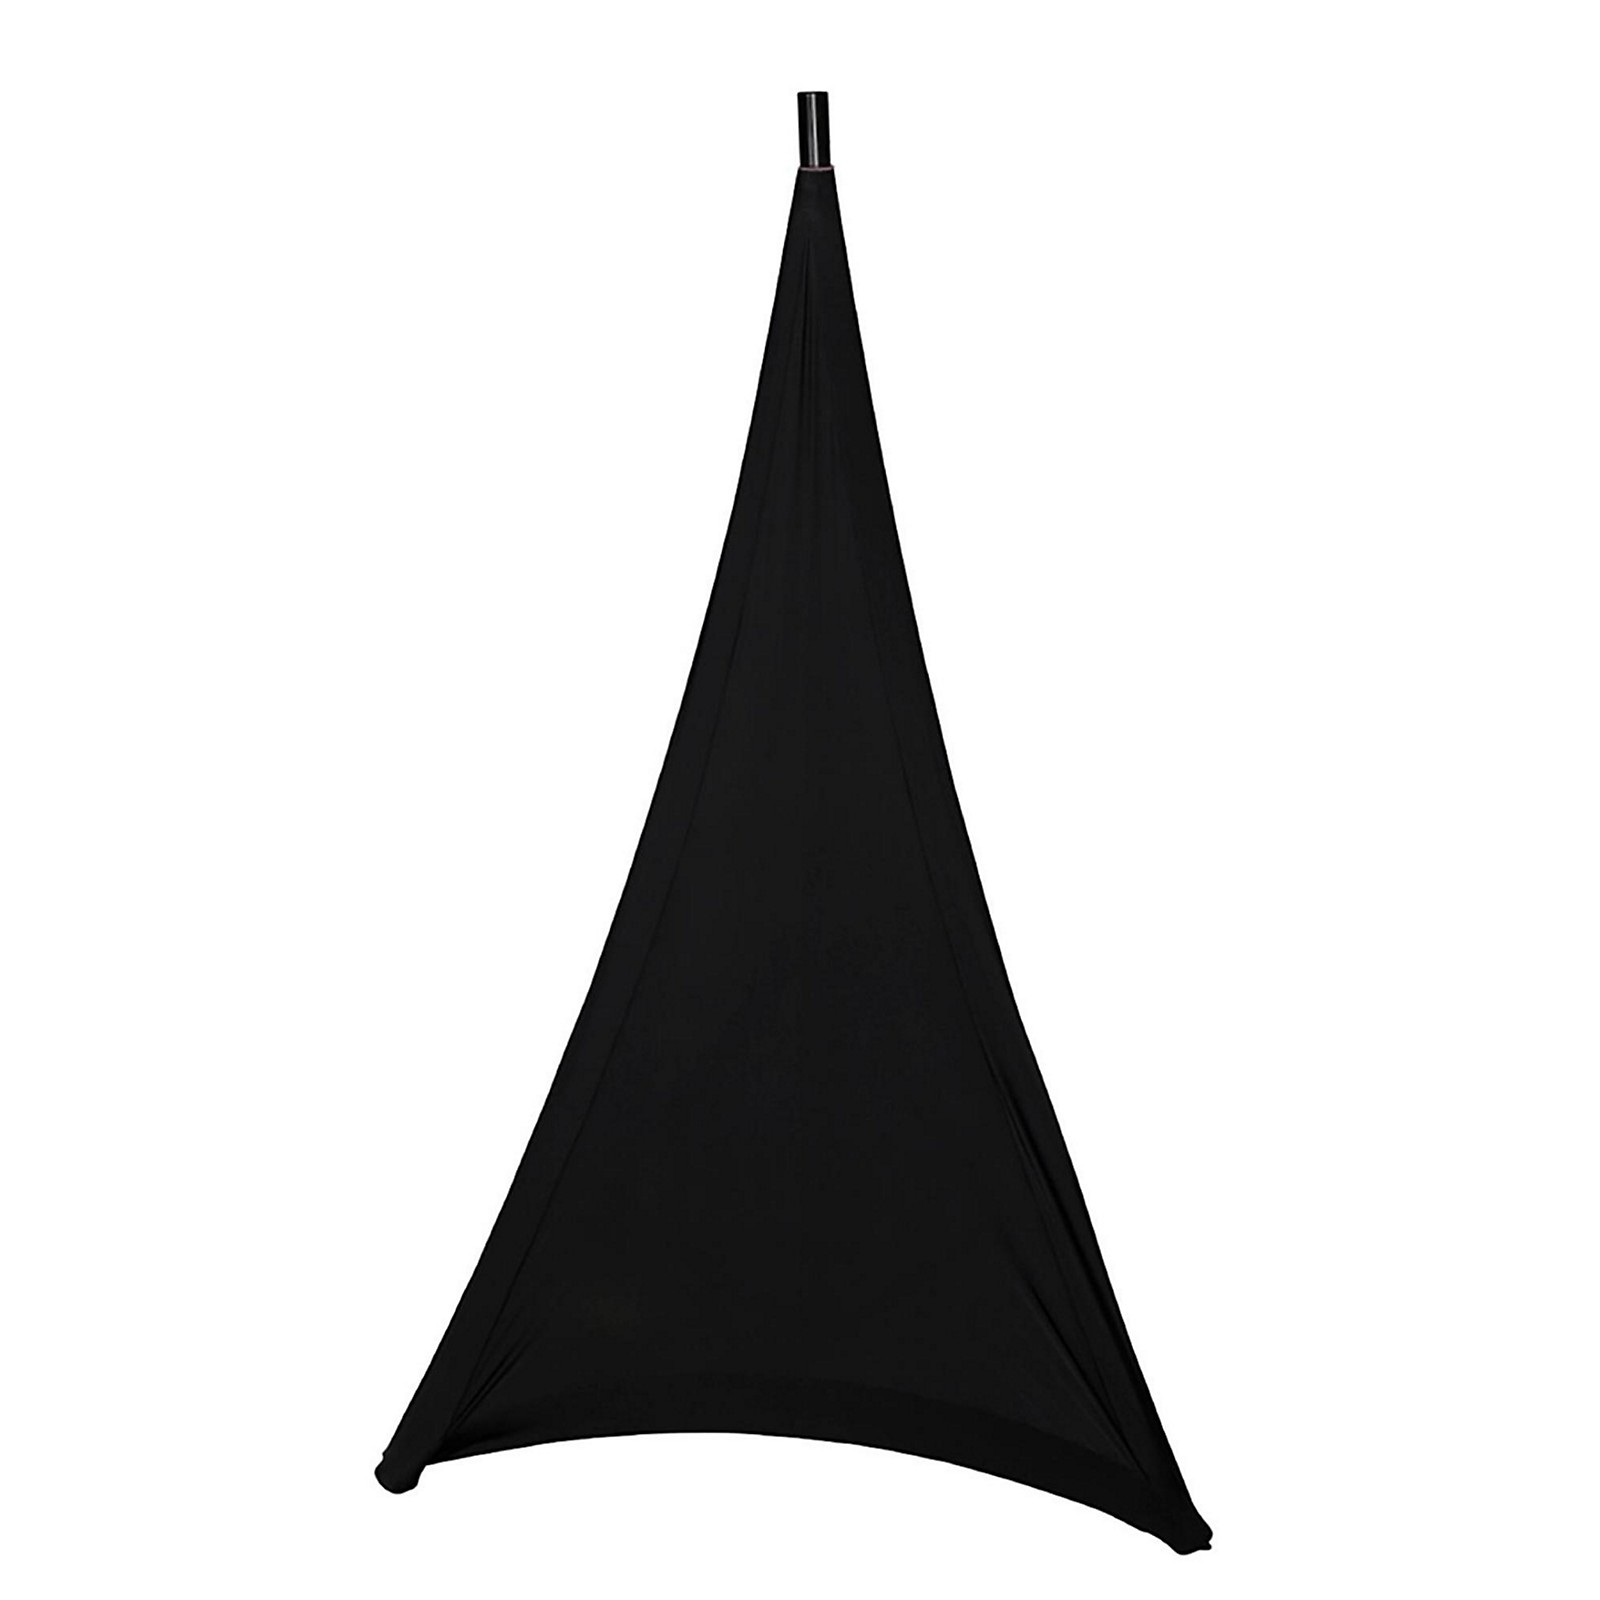 JBL Bag Stretchy Cover for Tripod Stand - 1 Side Black